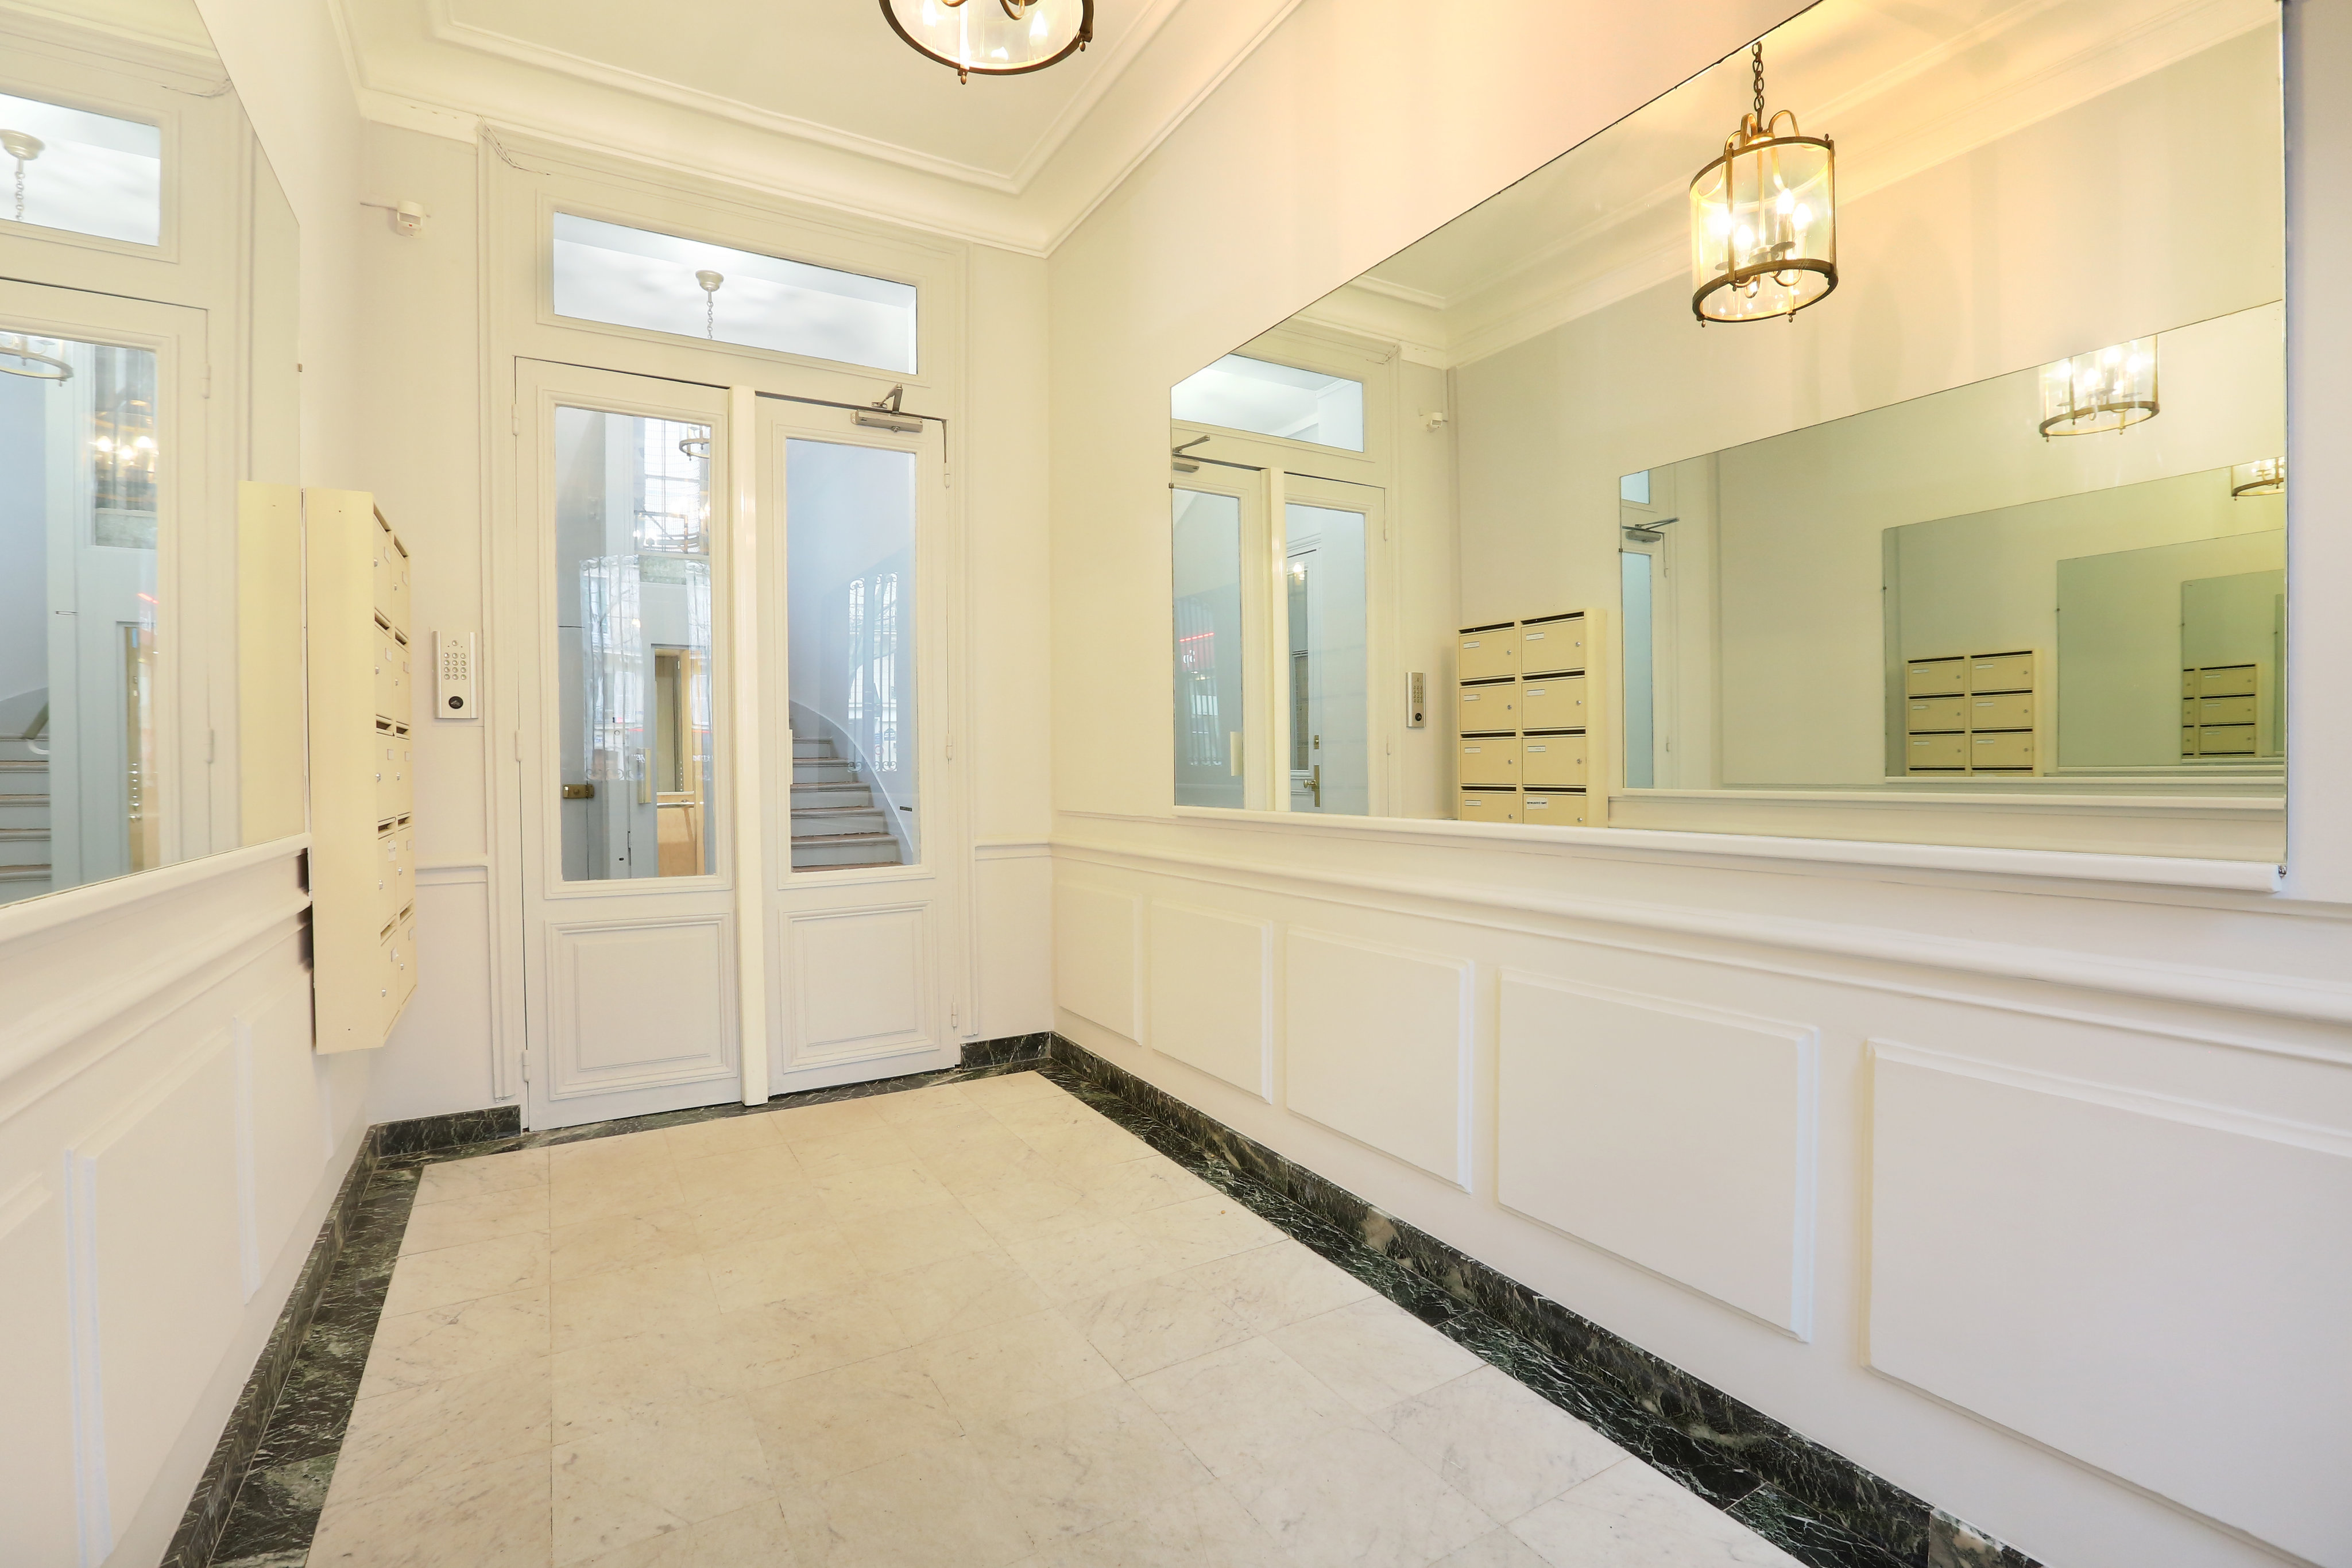 Additional photo for property listing at Paris 7th District – In the prestigious Gros Caillou area between the Eiffel Tower and les Invalides - Avenue Bosquet  Paris, Paris,75007 France